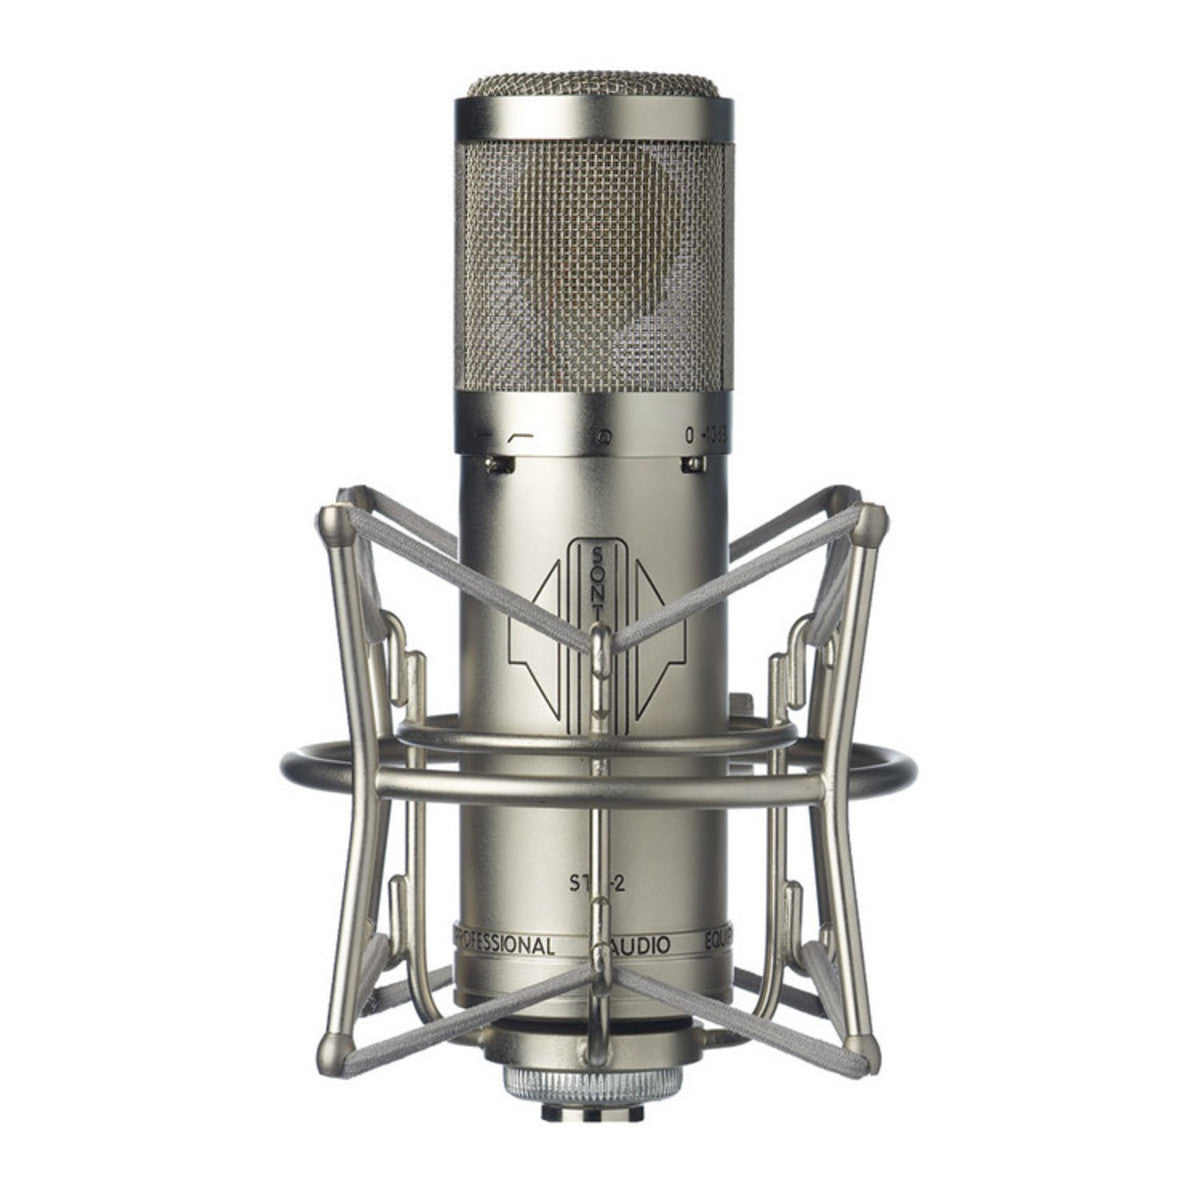 Sontronics STC-2 large-diaphragm condenser microphone - soundstore-finland